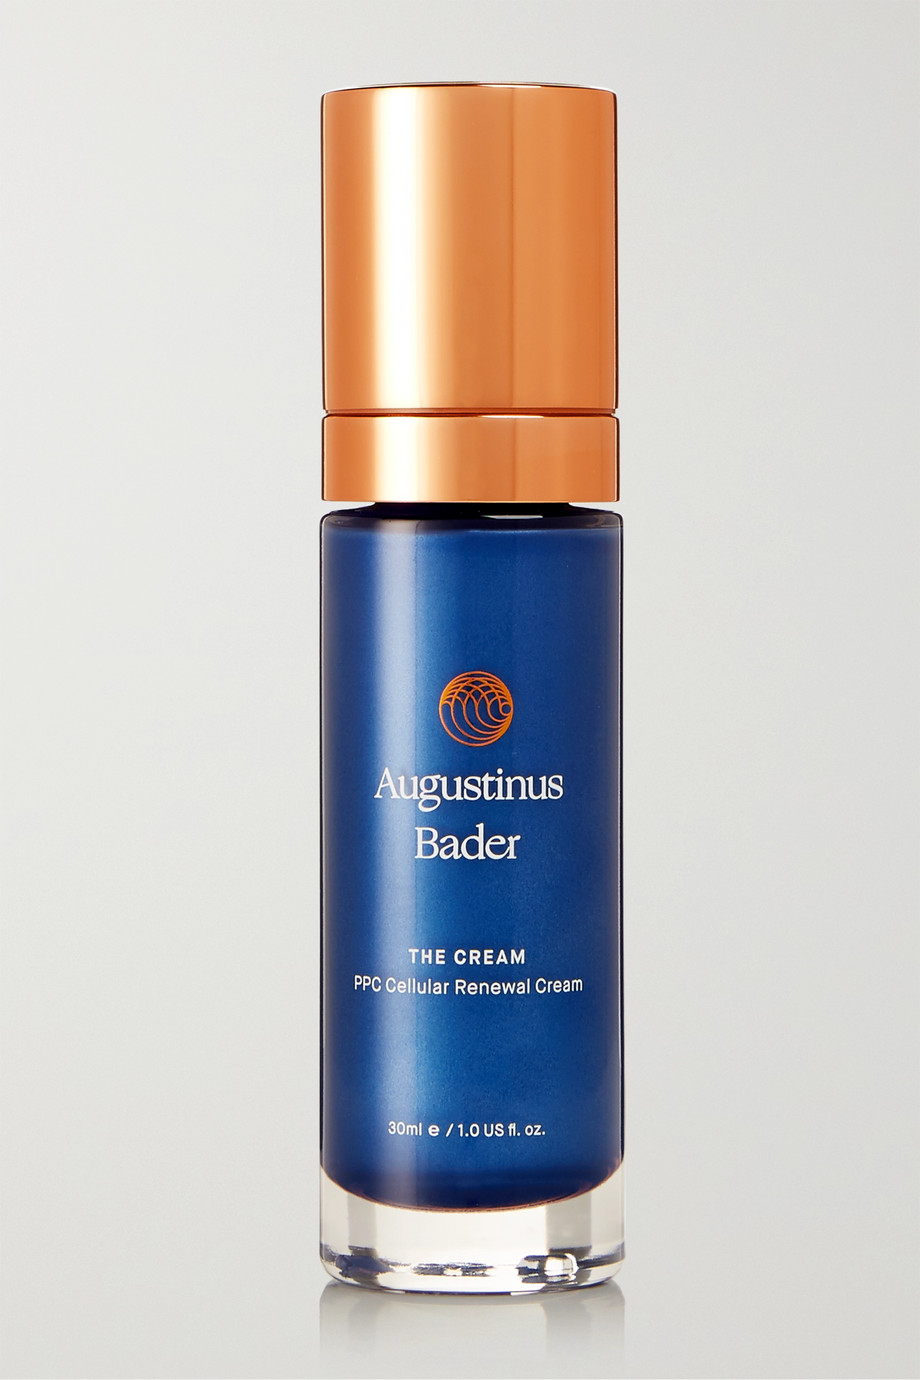 Augustinus Bader The Cream, 30ml